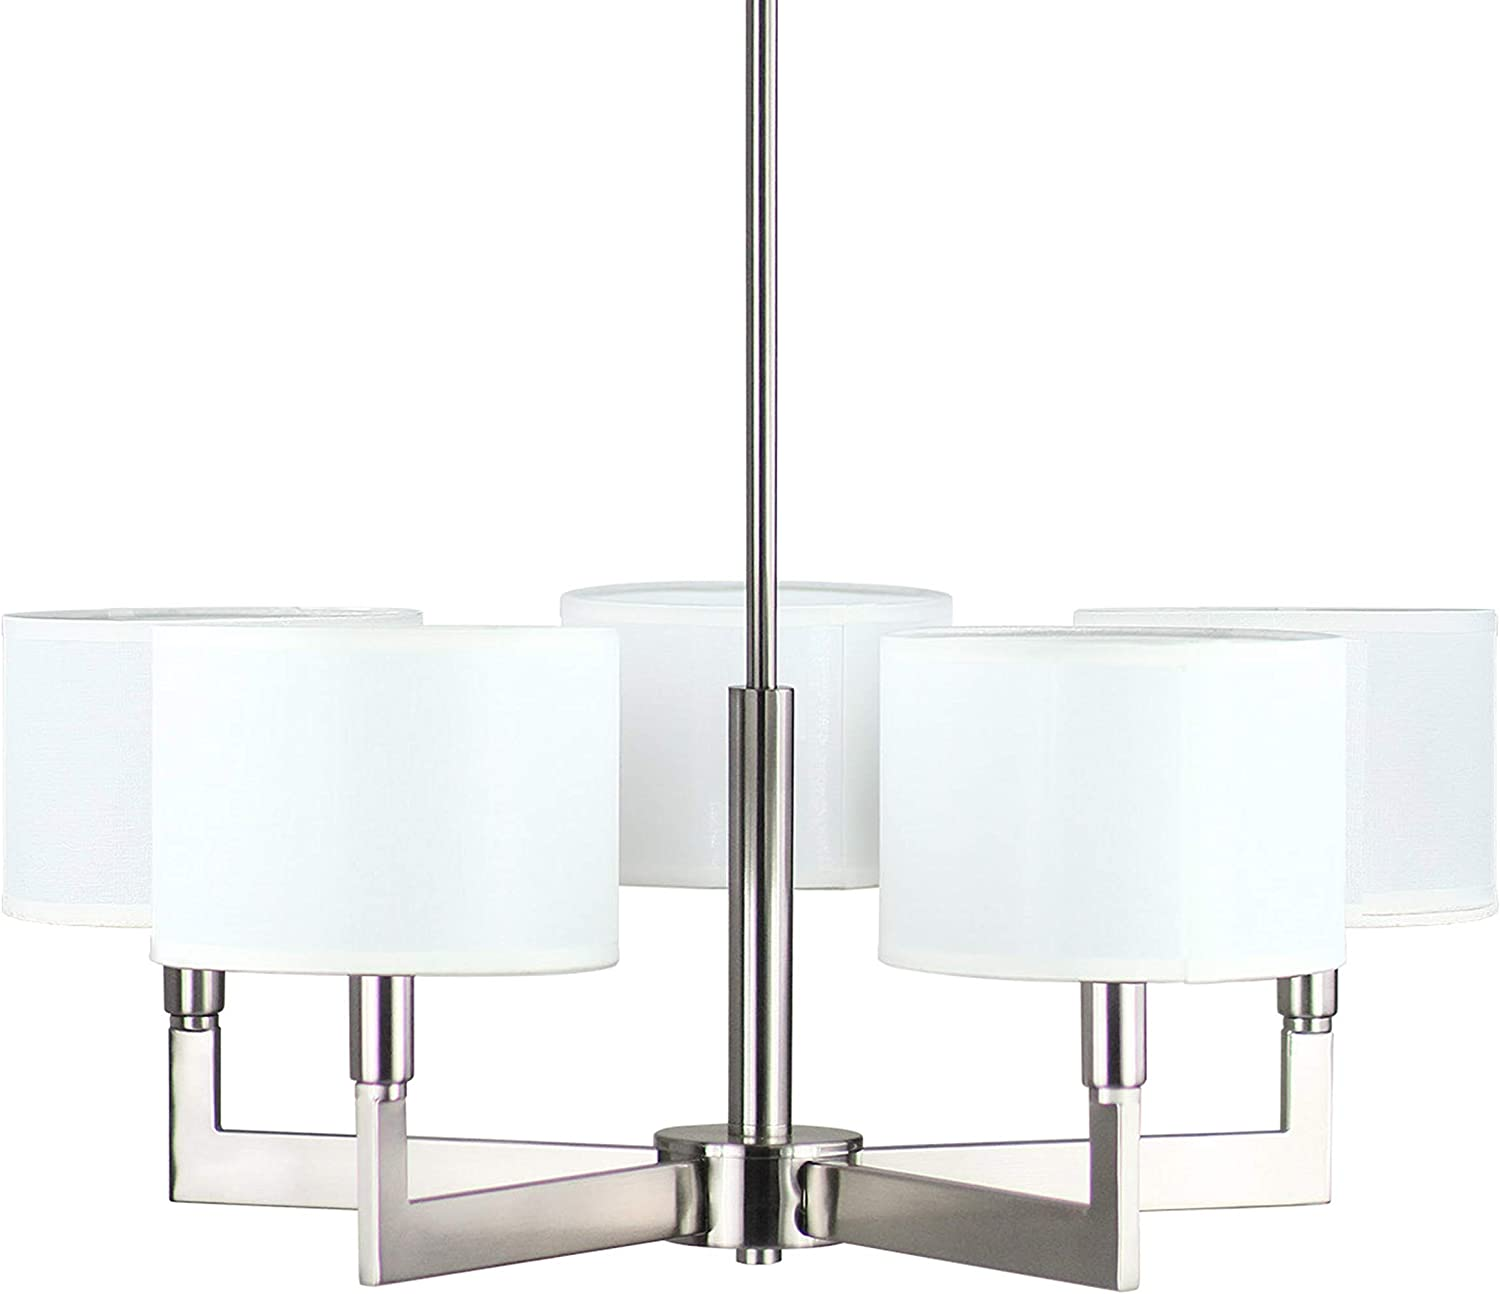 Allegro 5 Light Pendant Chandelier Brushed Nickel w Fabric Shade – Linea di Liara LL-C135-BN